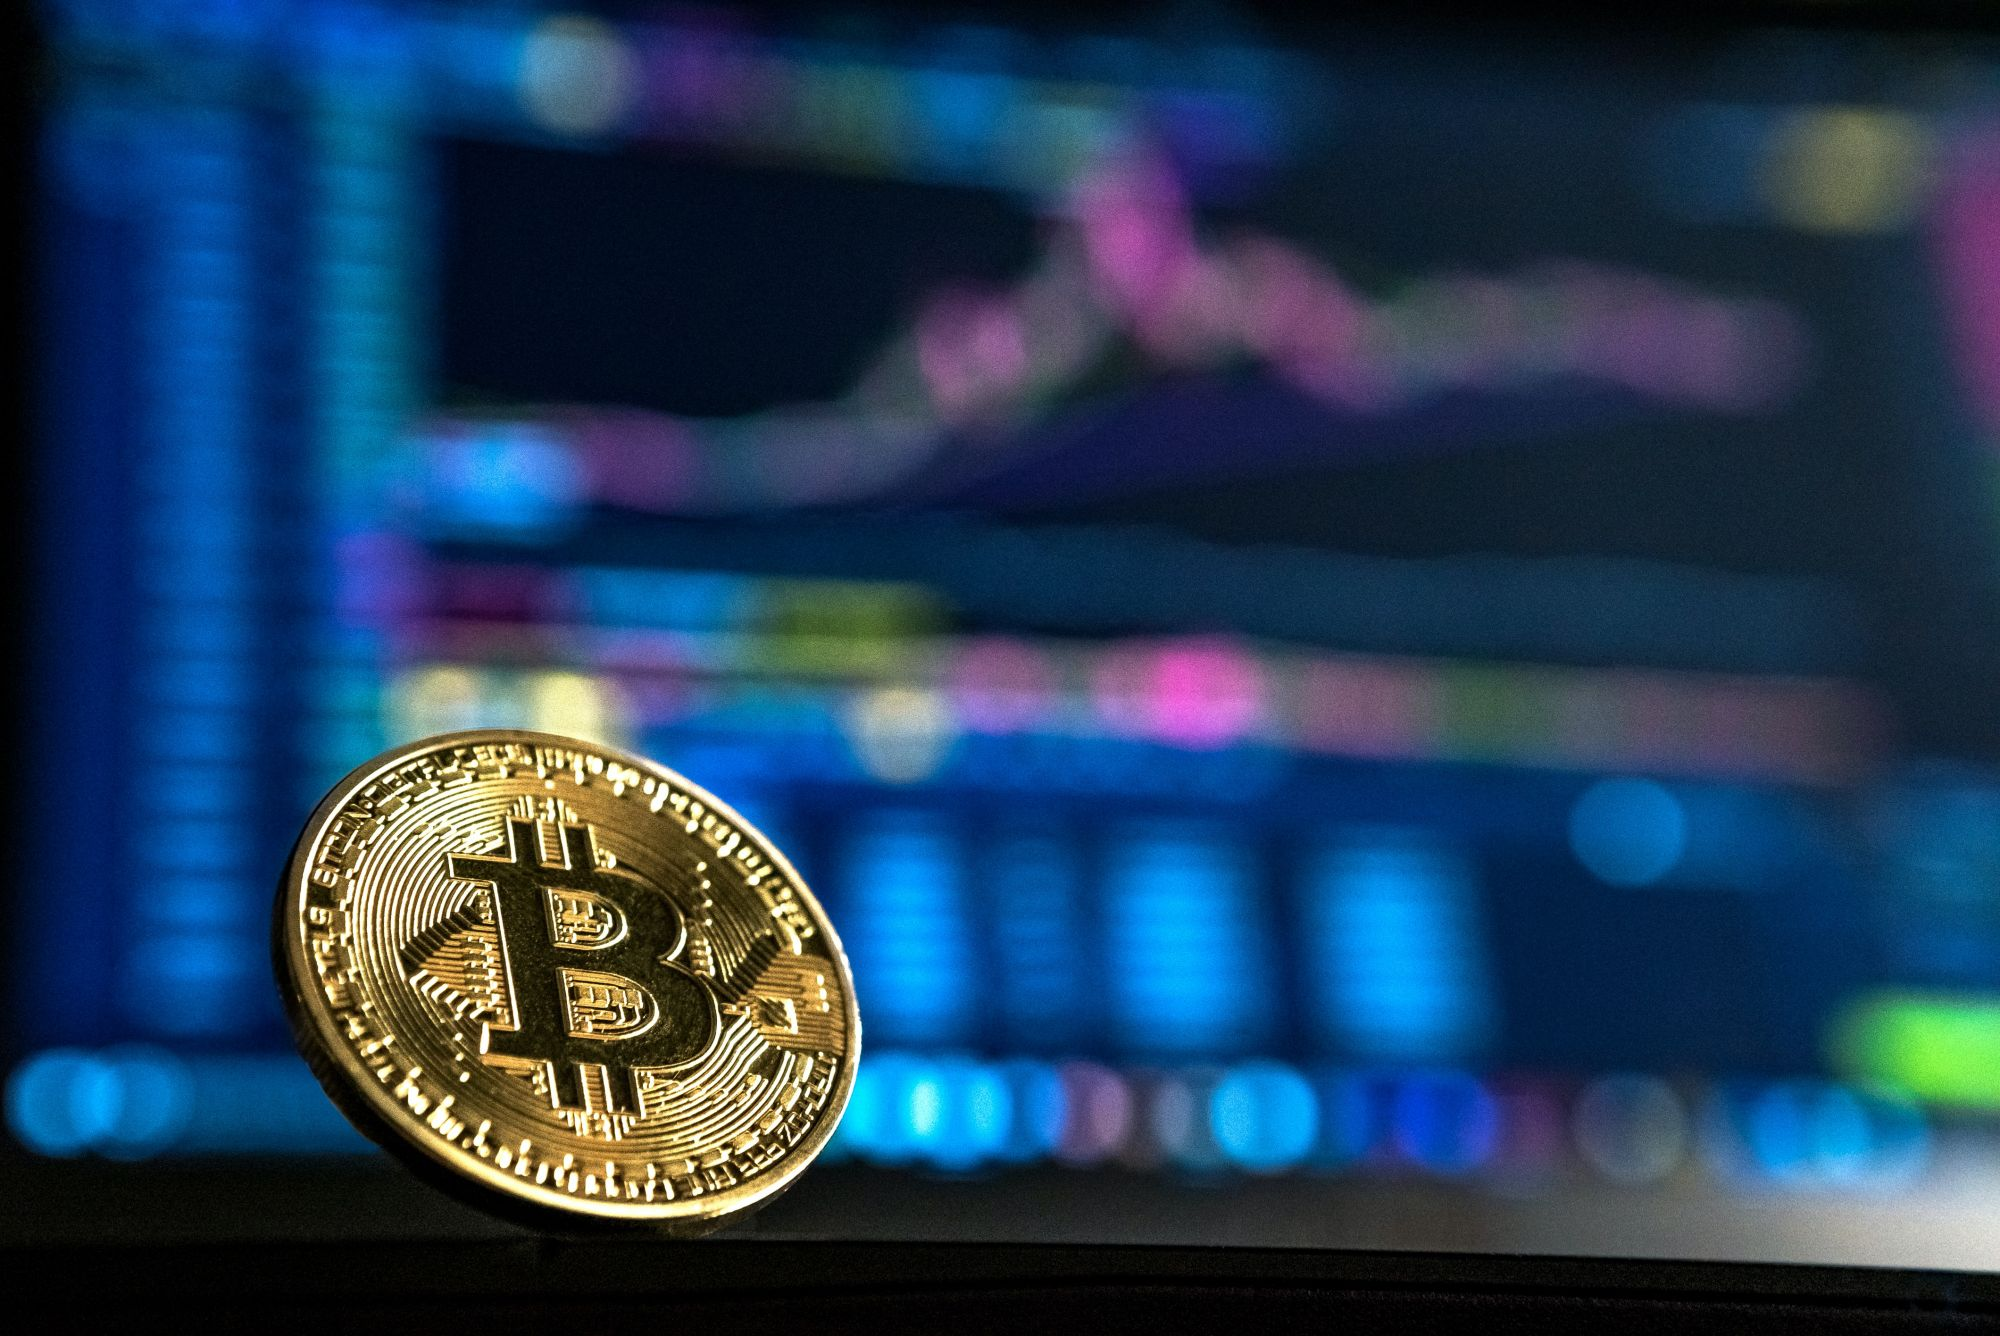 5 Important Facts to Know About Bitcoin